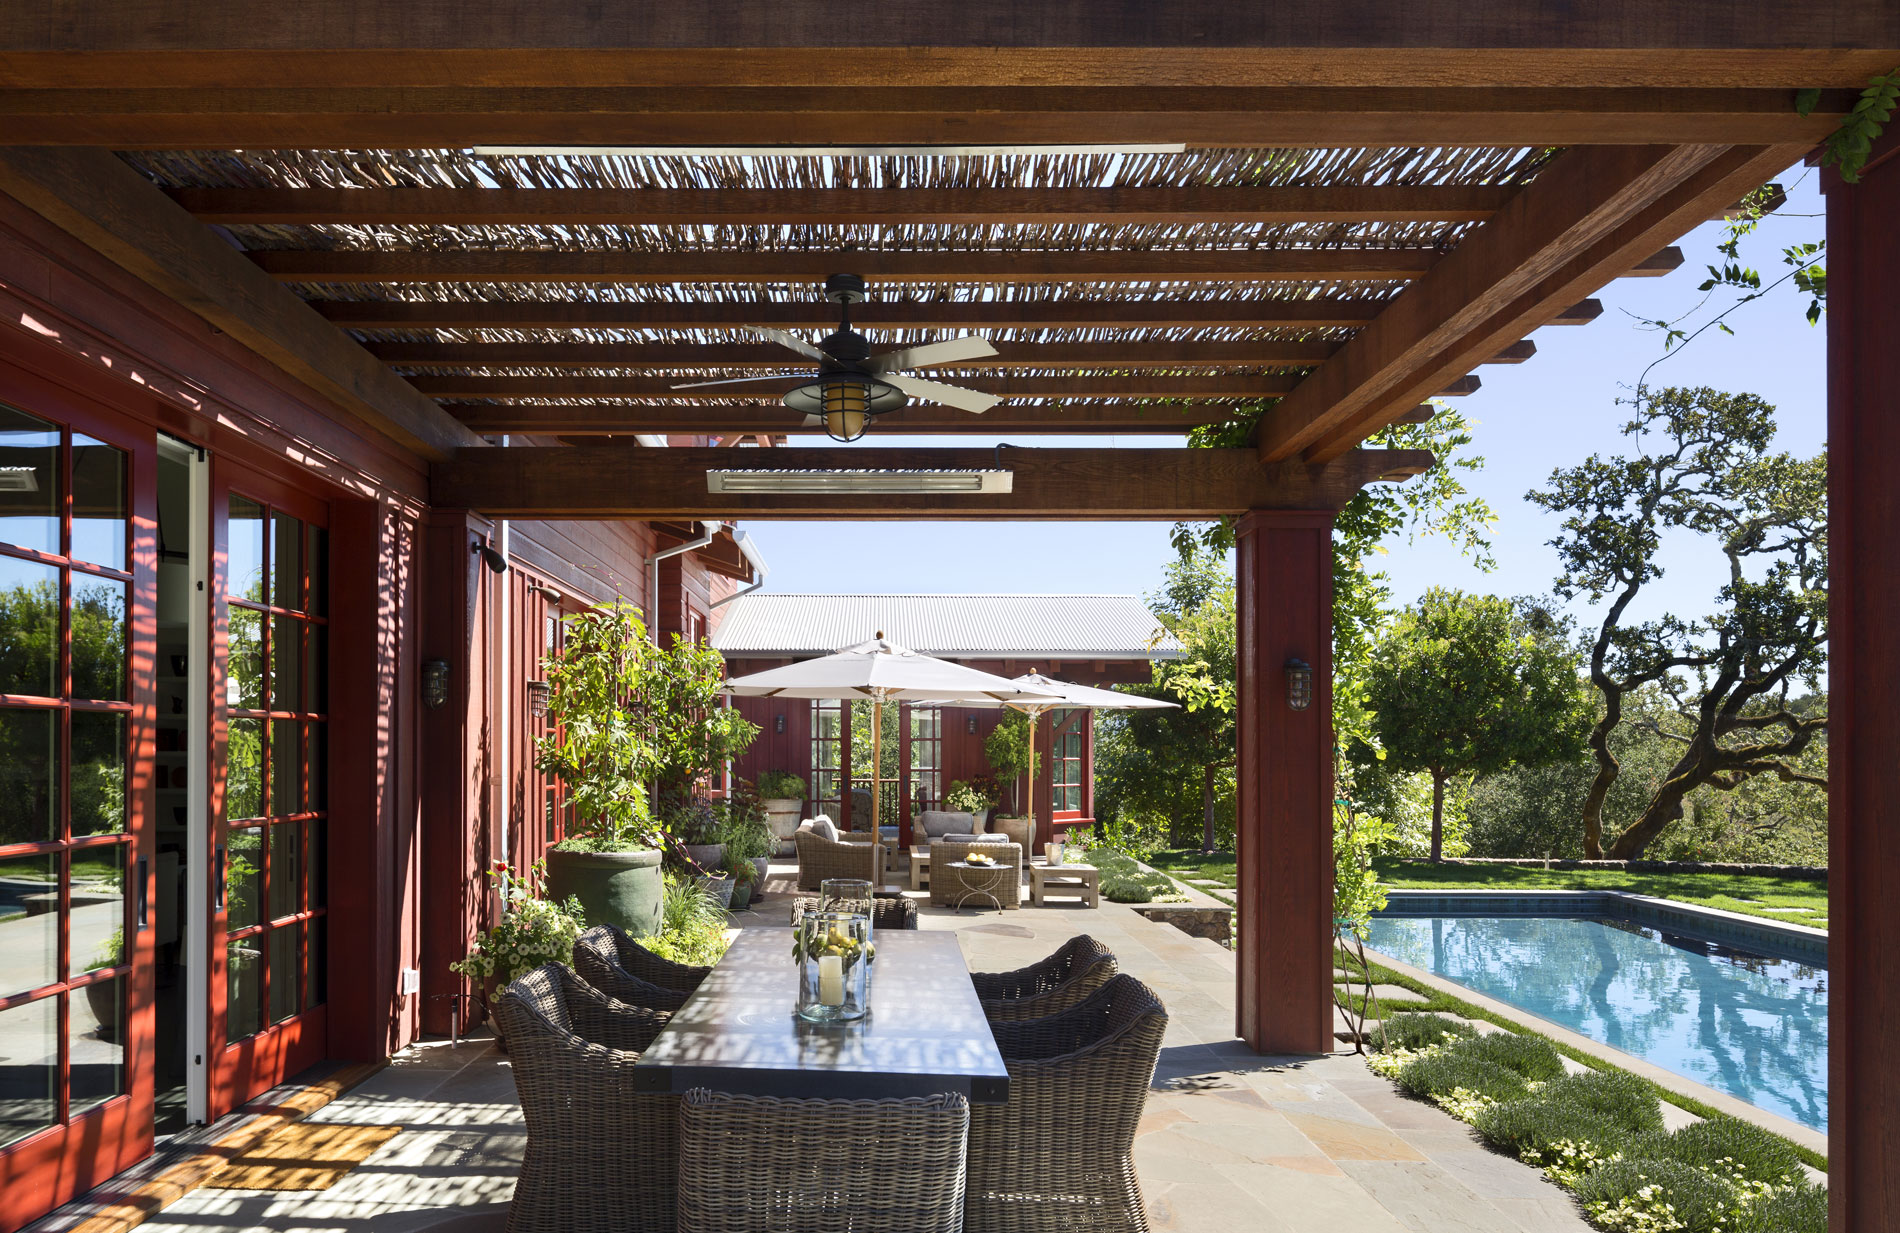 View along the back terrace from the dining pergola. (Photo credit: Peter Aaron/OTTO for Robert A.M. Stern Architects)